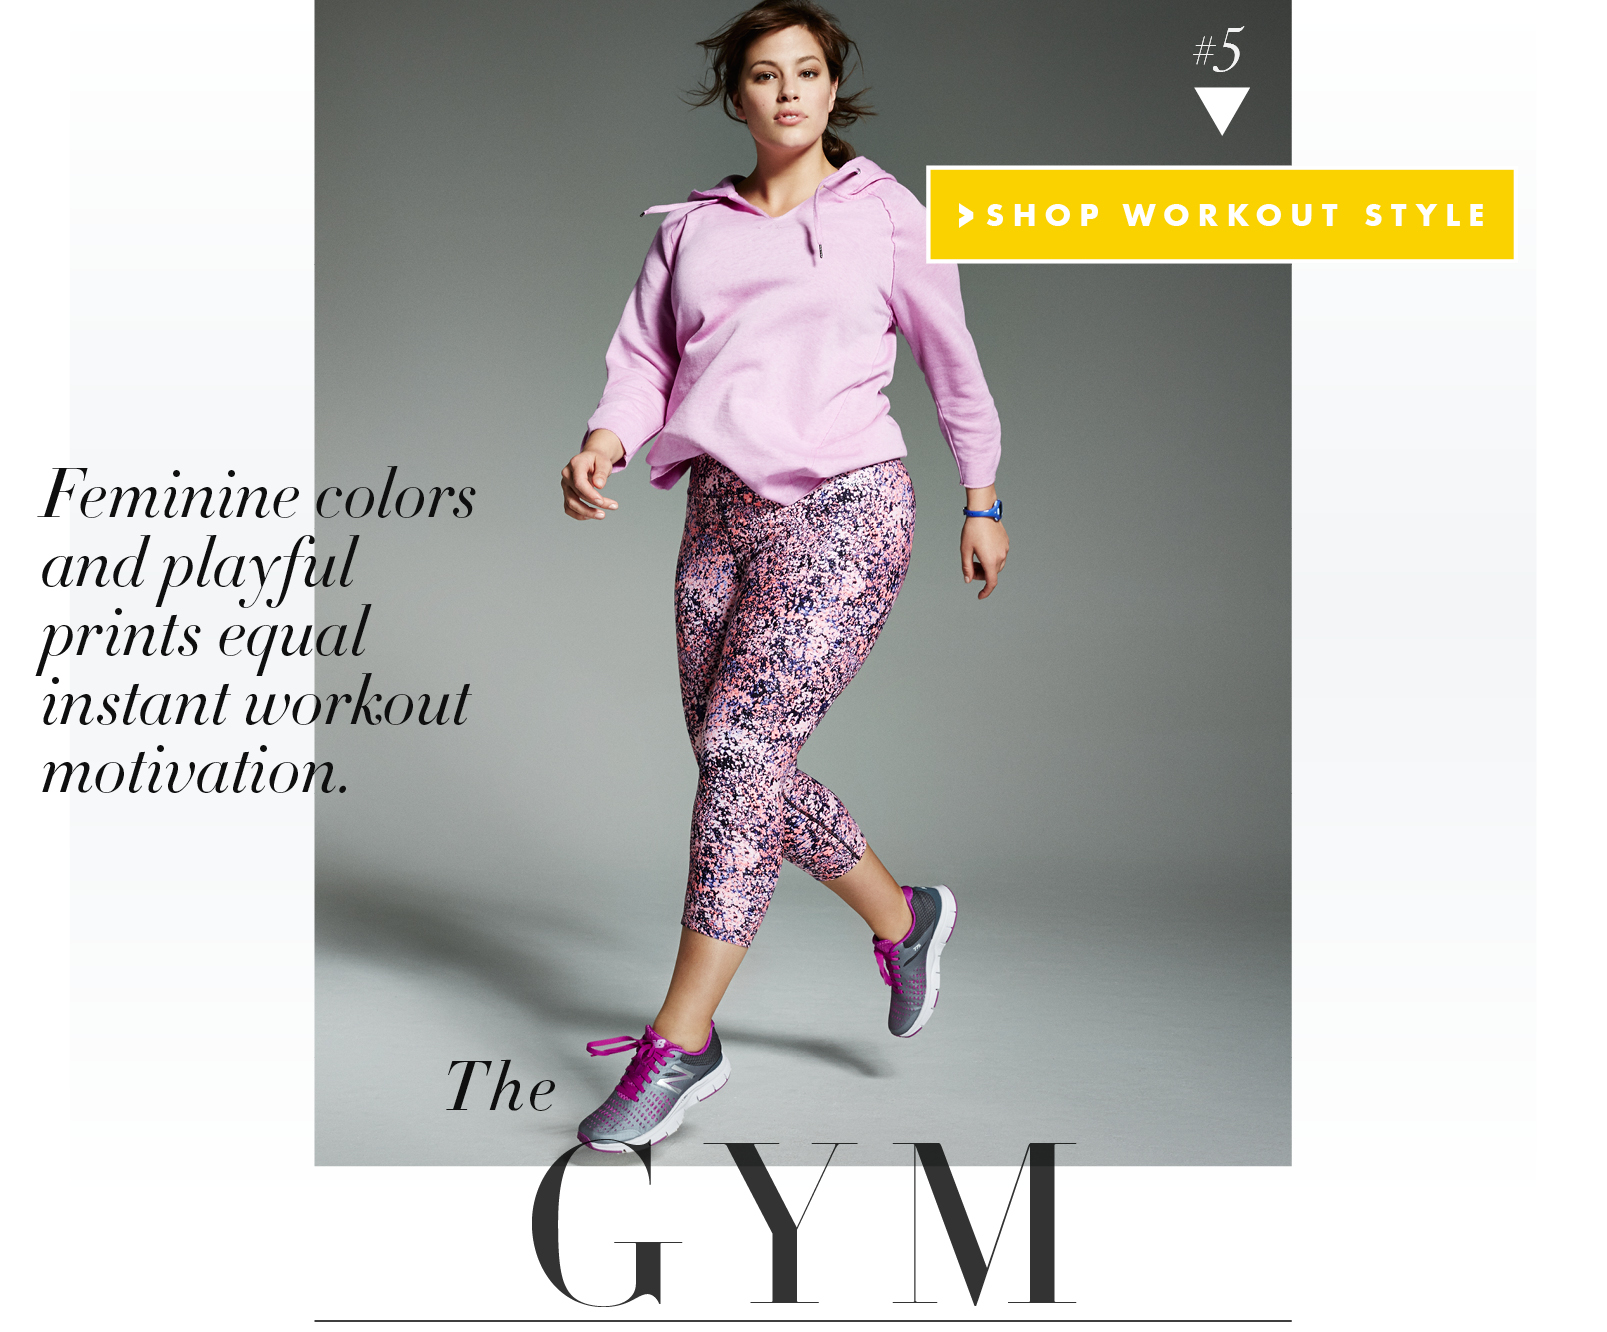 Ashley Graham's Workout Style